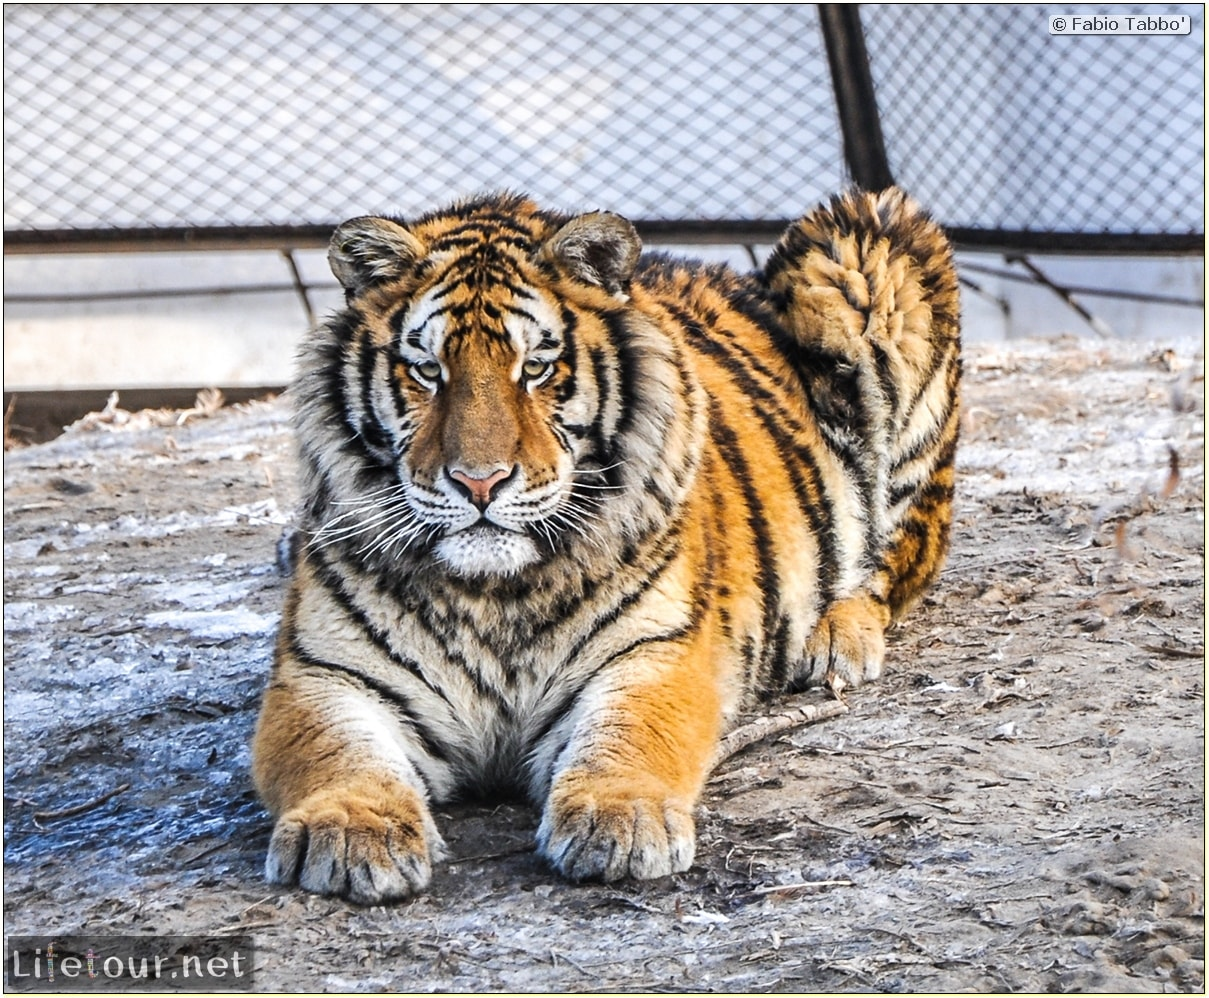 Fabio's LifeTour - China (1993-1997 and 2014) - Harbin (2014) - Siberian Tiger Park - 5652 COVER